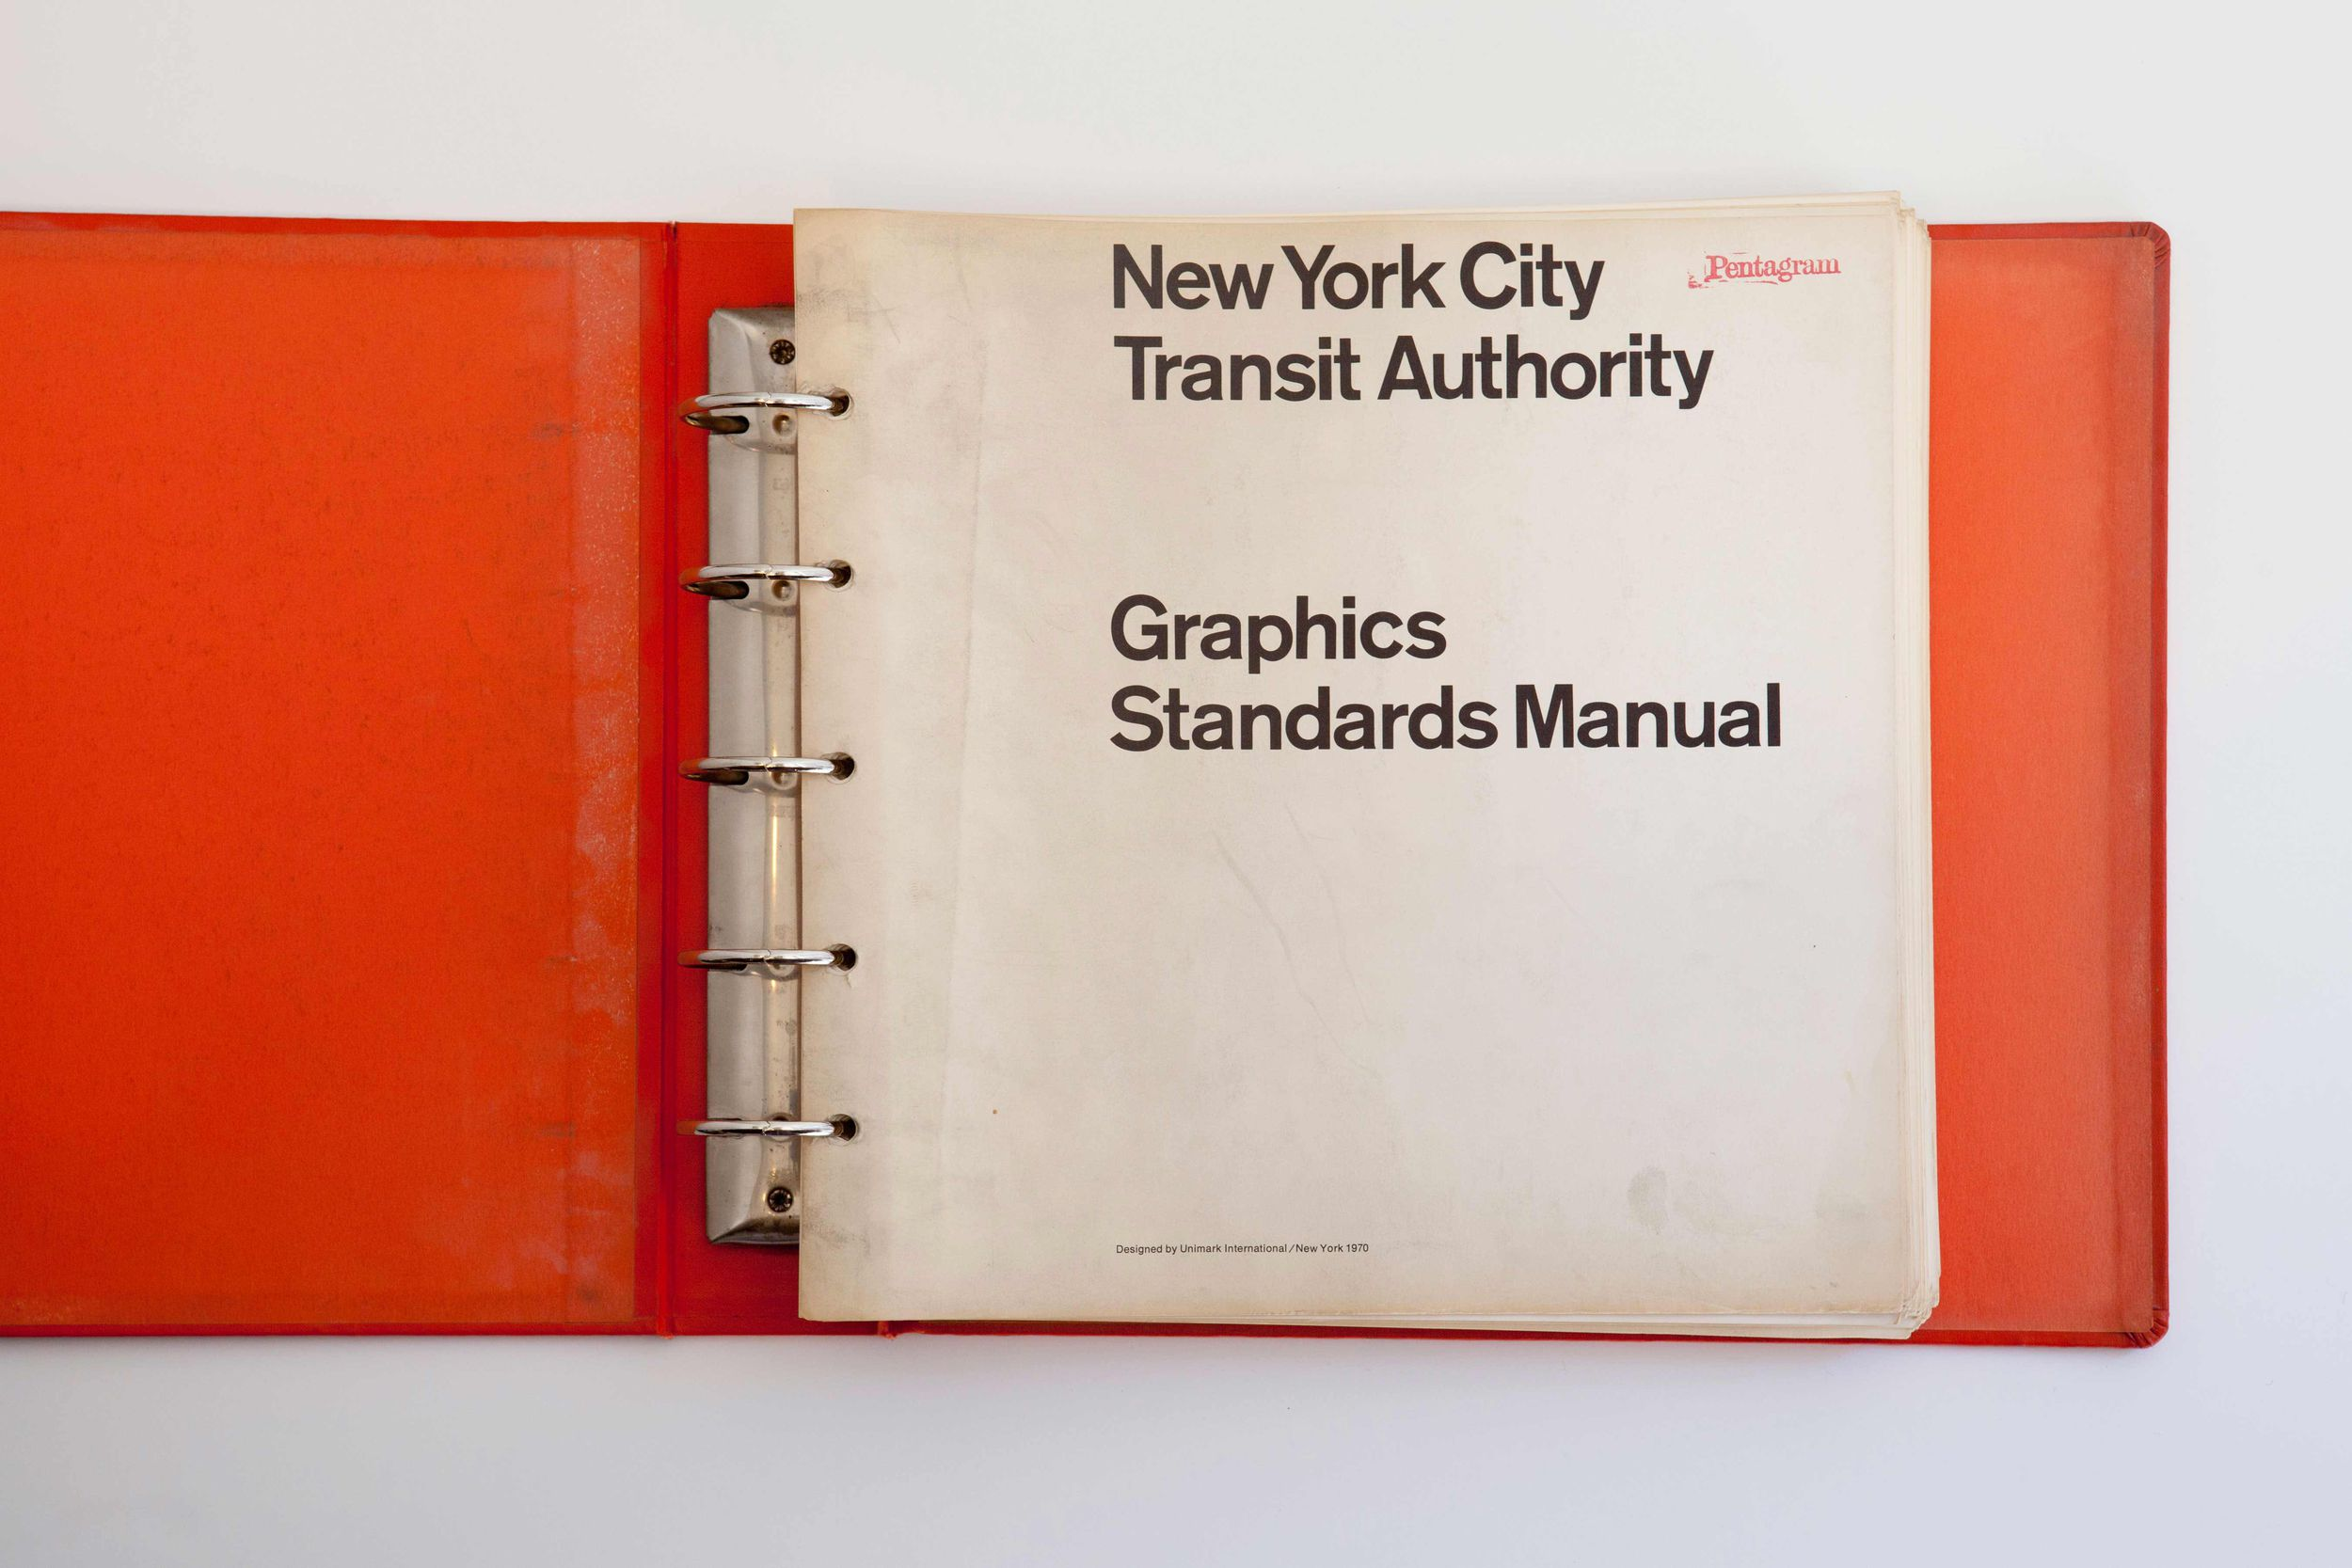 New York City Subway Map In The 1970s.Nycta Graphics Standards Manual Compact Edition